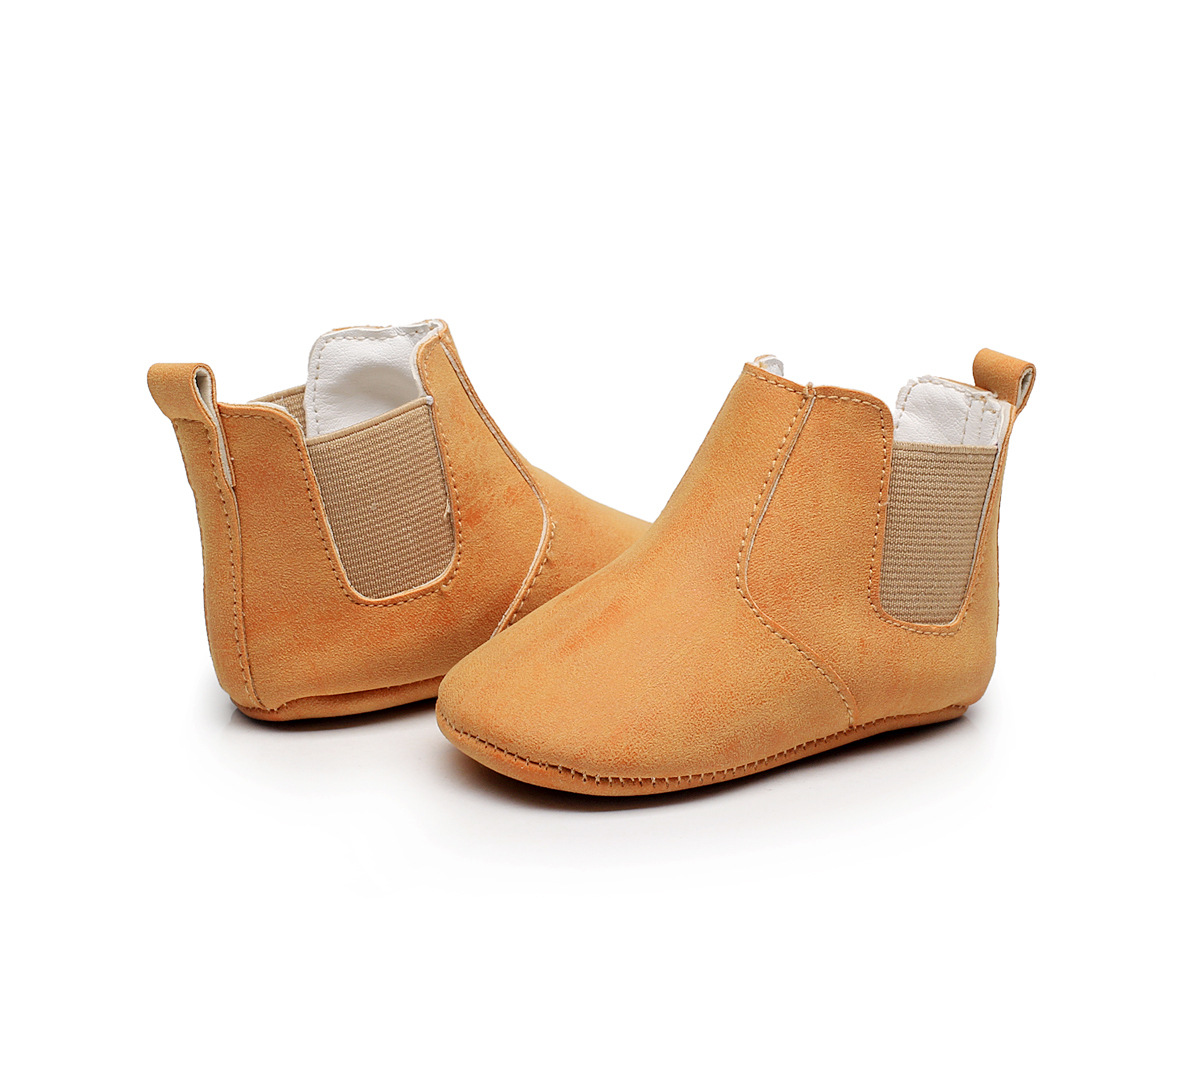 New Lovely Baby Boots New Cute Baby Moccasins Handmade Infants Fashion Boot 9 Colors Baby Girl Shoes Bebe Boy First Walkers